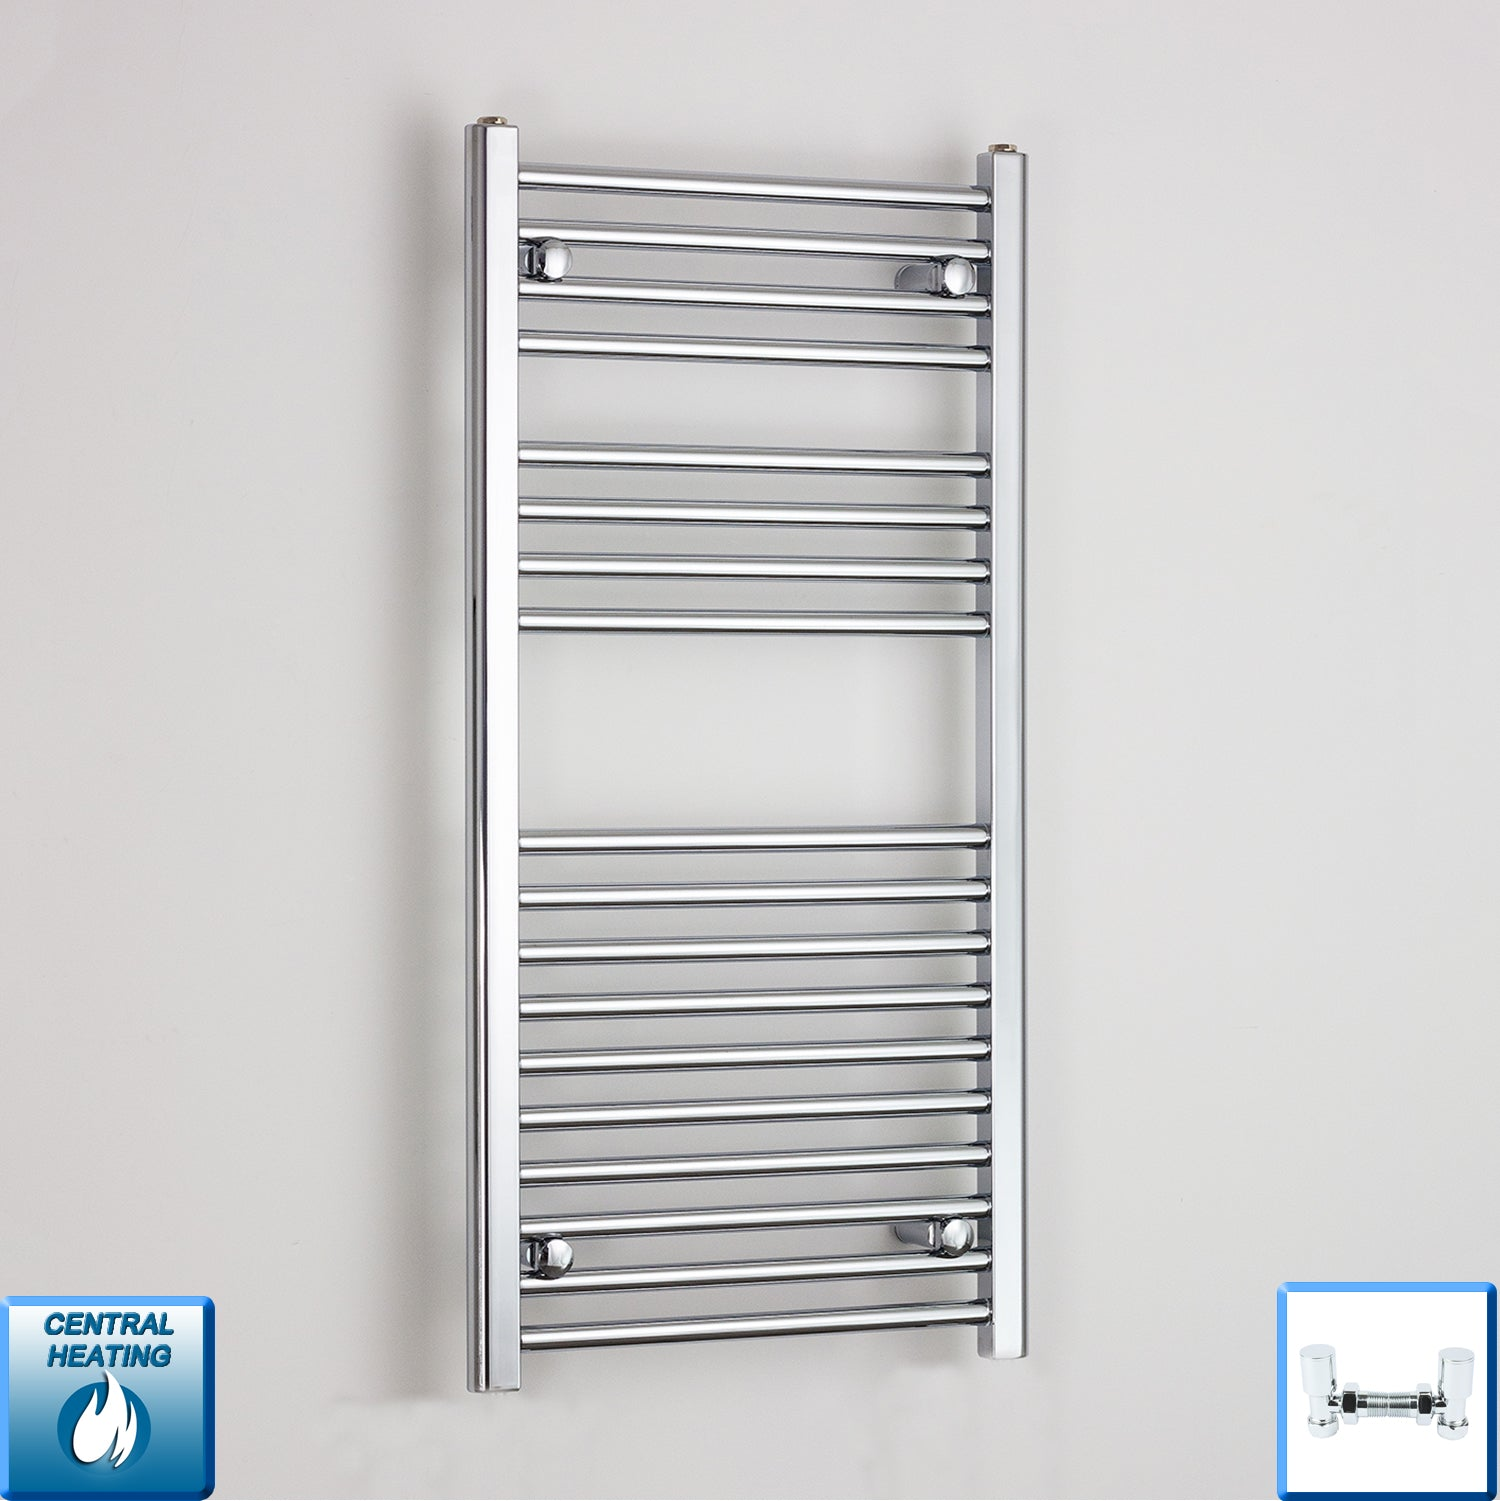 600mm Wide 1000mm High Curved Chrome Heated Towel Rail Radiator HTR,With Angled Valve